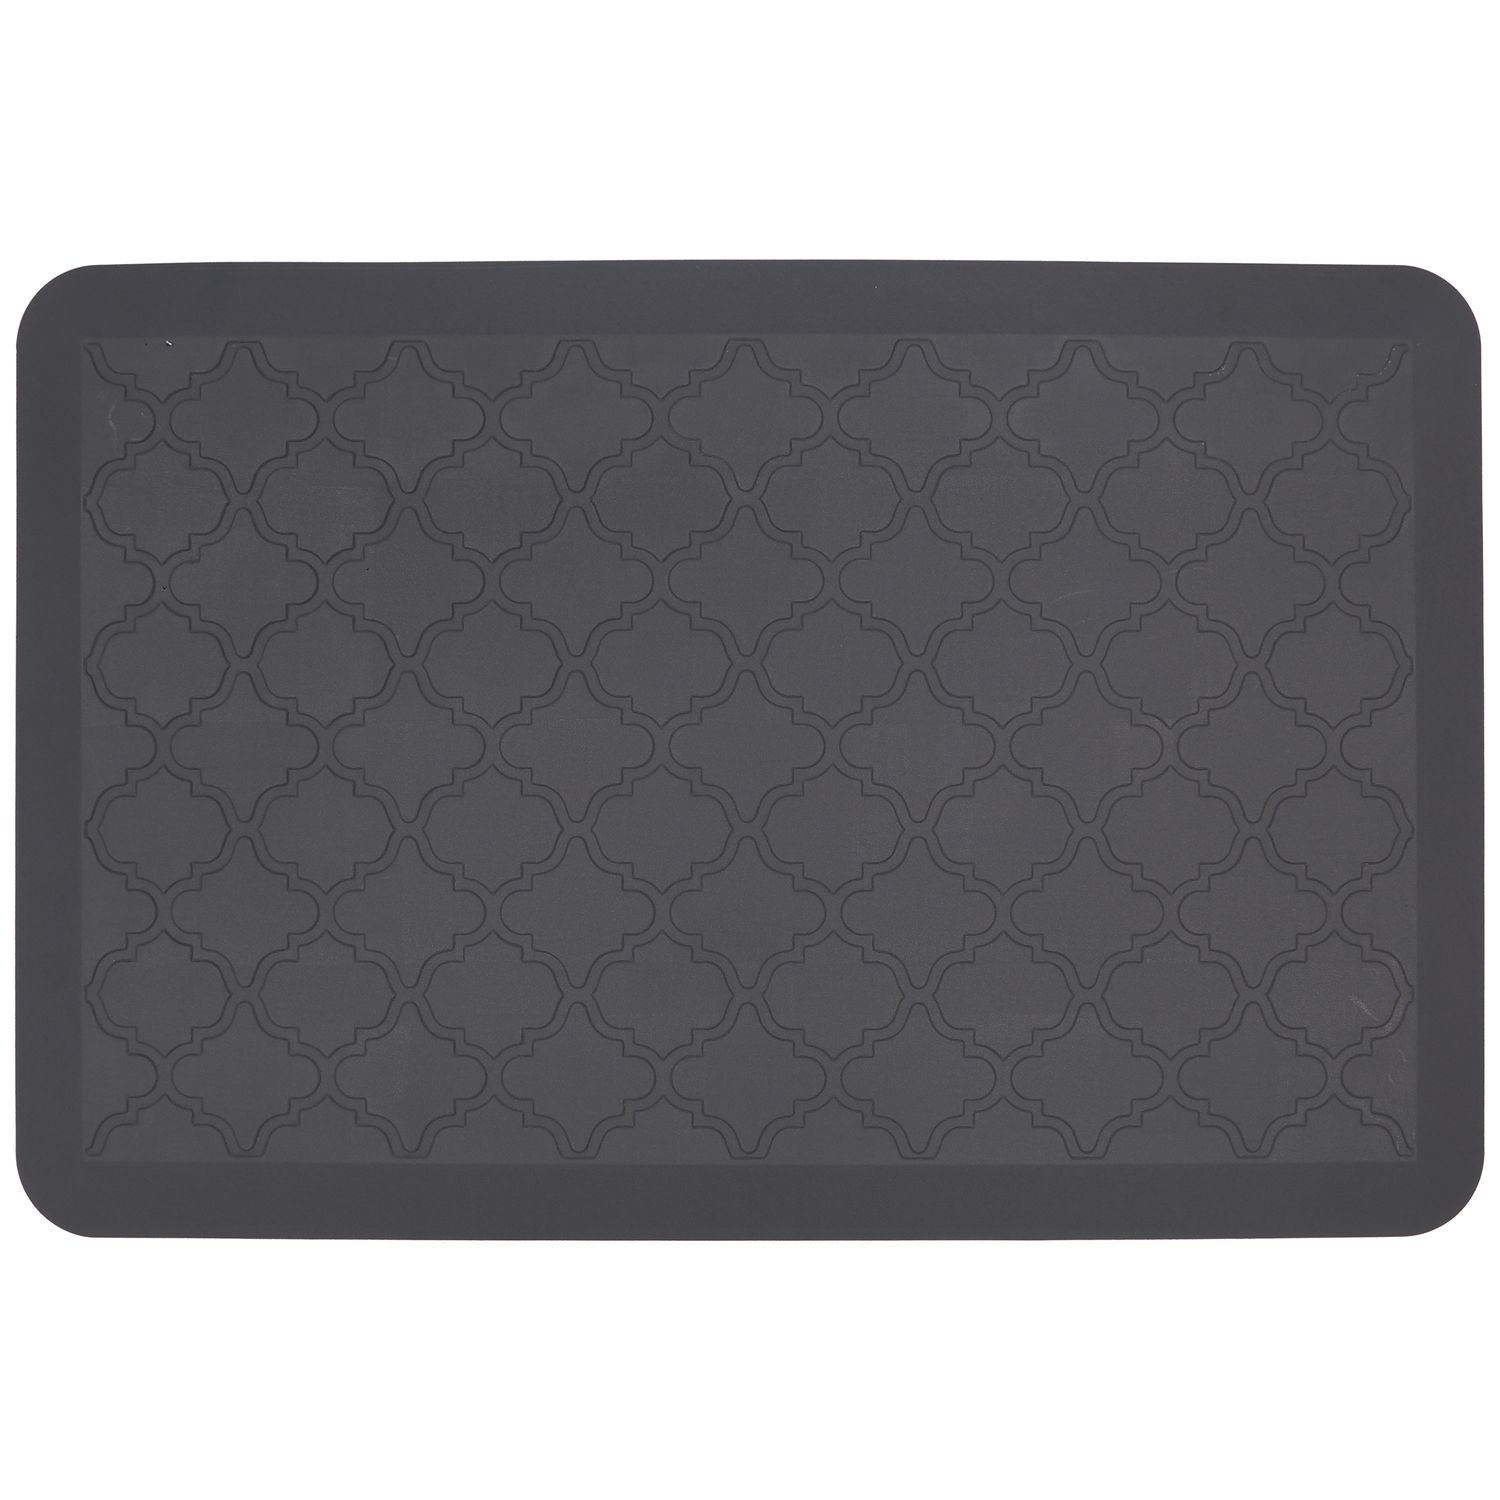 Food Network™ Ultra Comfort Tavertine Lattice Kitchen Mat. Gray Black